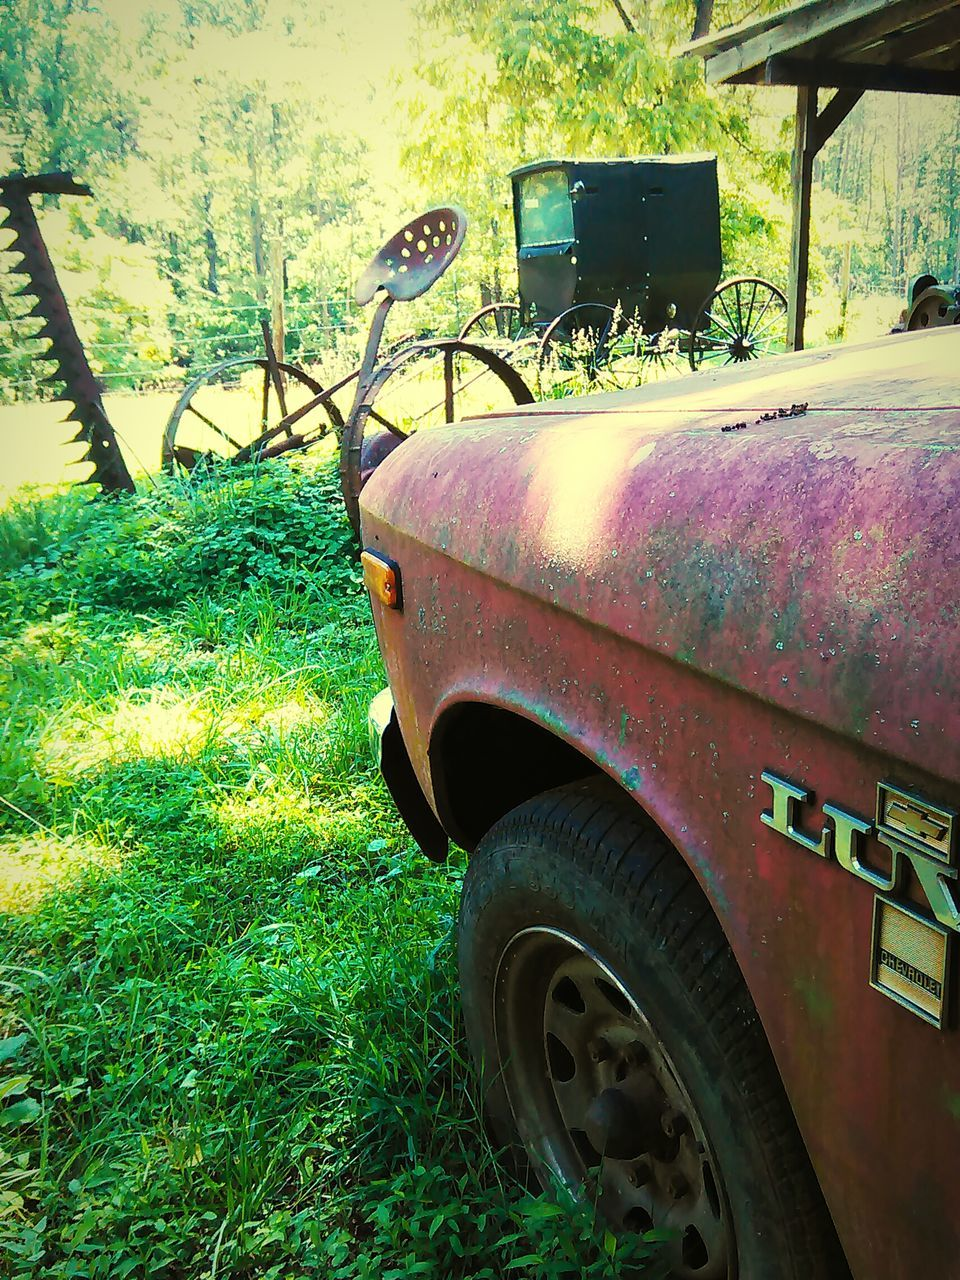 car, transportation, land vehicle, grass, rusty, field, day, obsolete, tree, damaged, green color, abandoned, mode of transport, no people, outdoors, plant, nature, stationary, growth